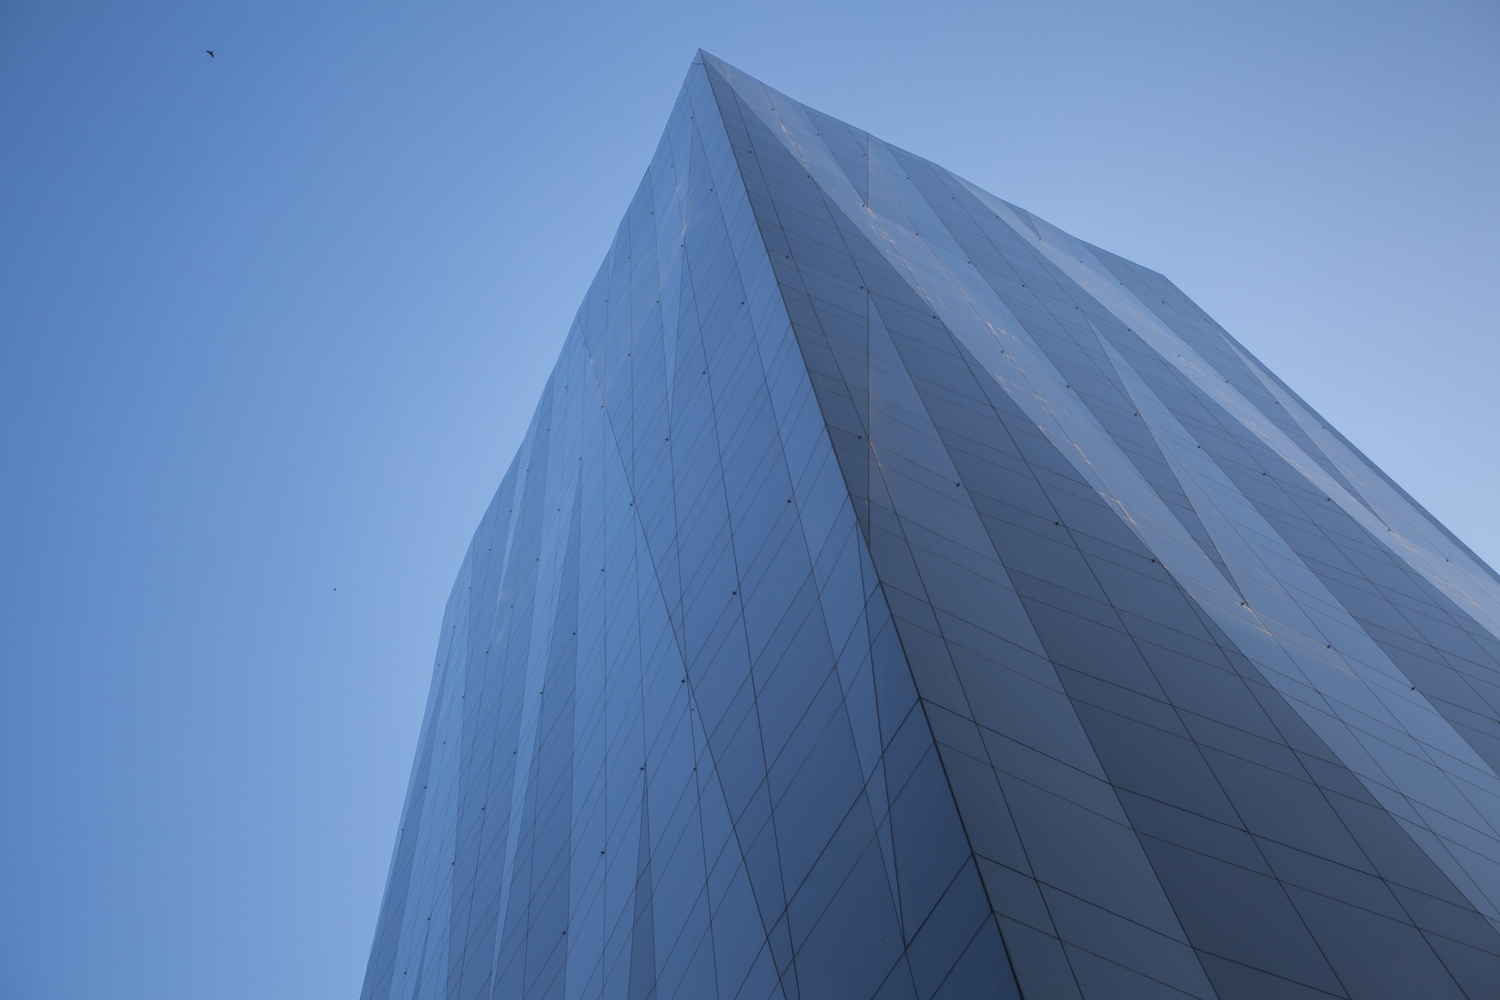 Upward view of a large grey building that is covered in glass windows that is under a blue sky.